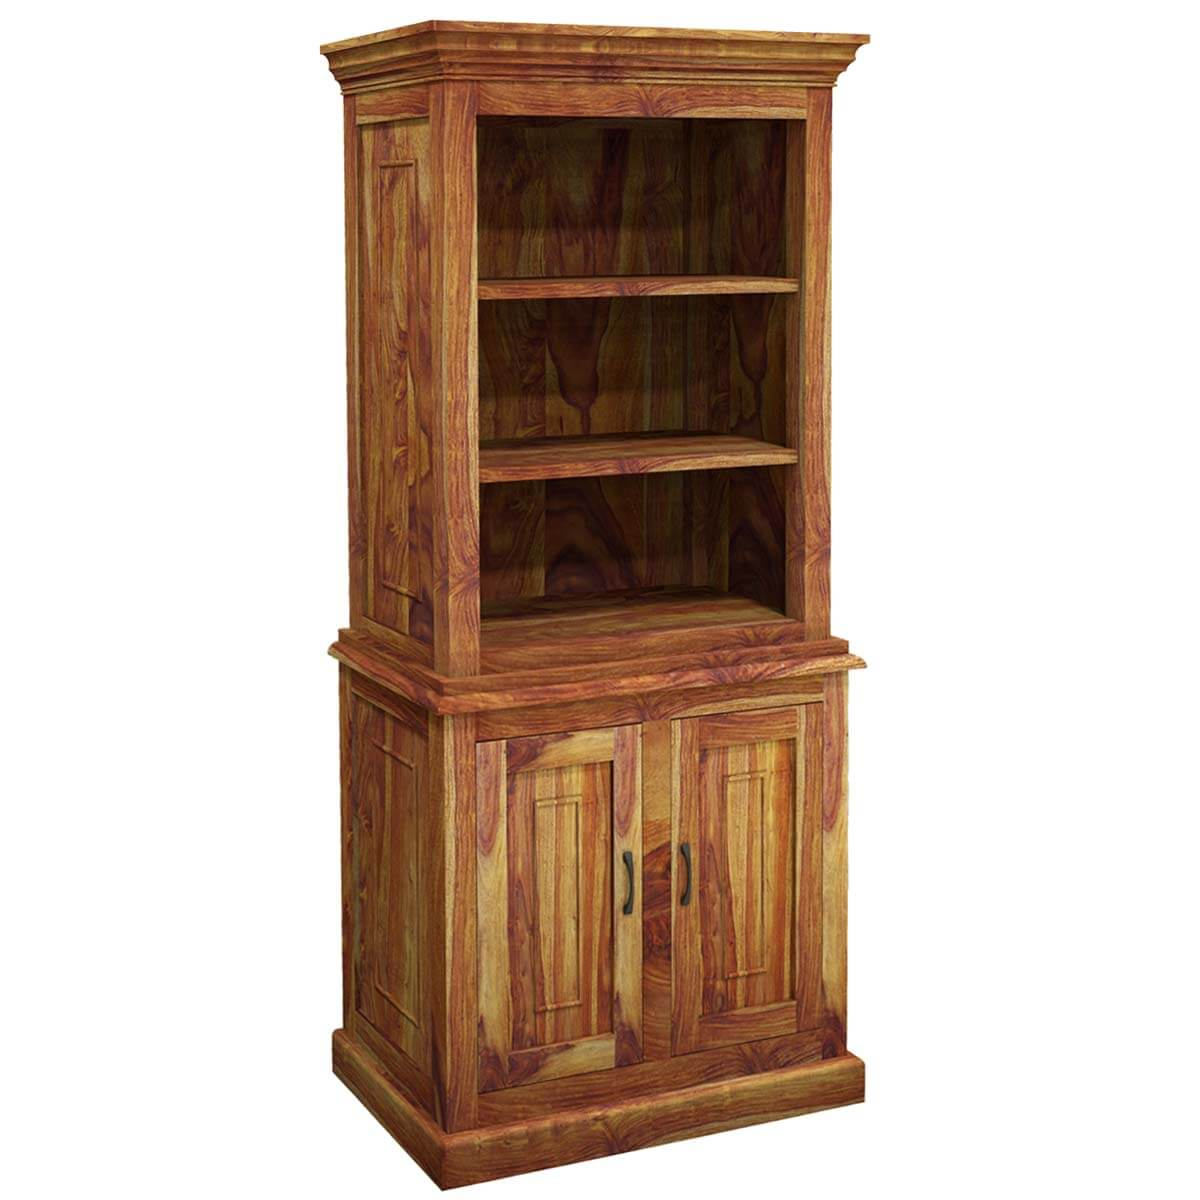 Wooden Storage Cabinets ~ Idaho modern solid wood standard bookcase storage cabinet